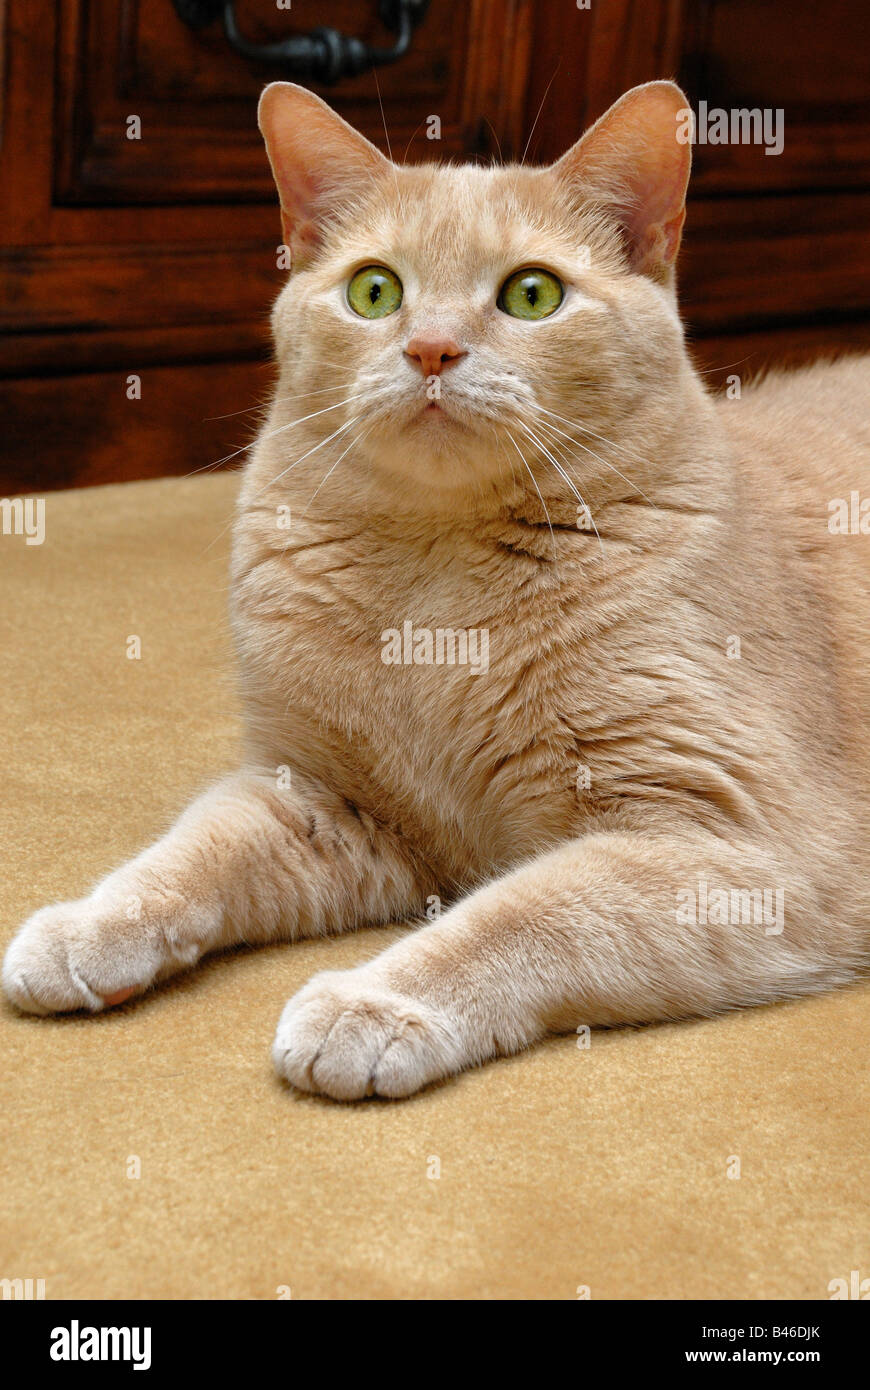 This beautiful orange tabby cat looks alertly at something in the distance. - Stock Image